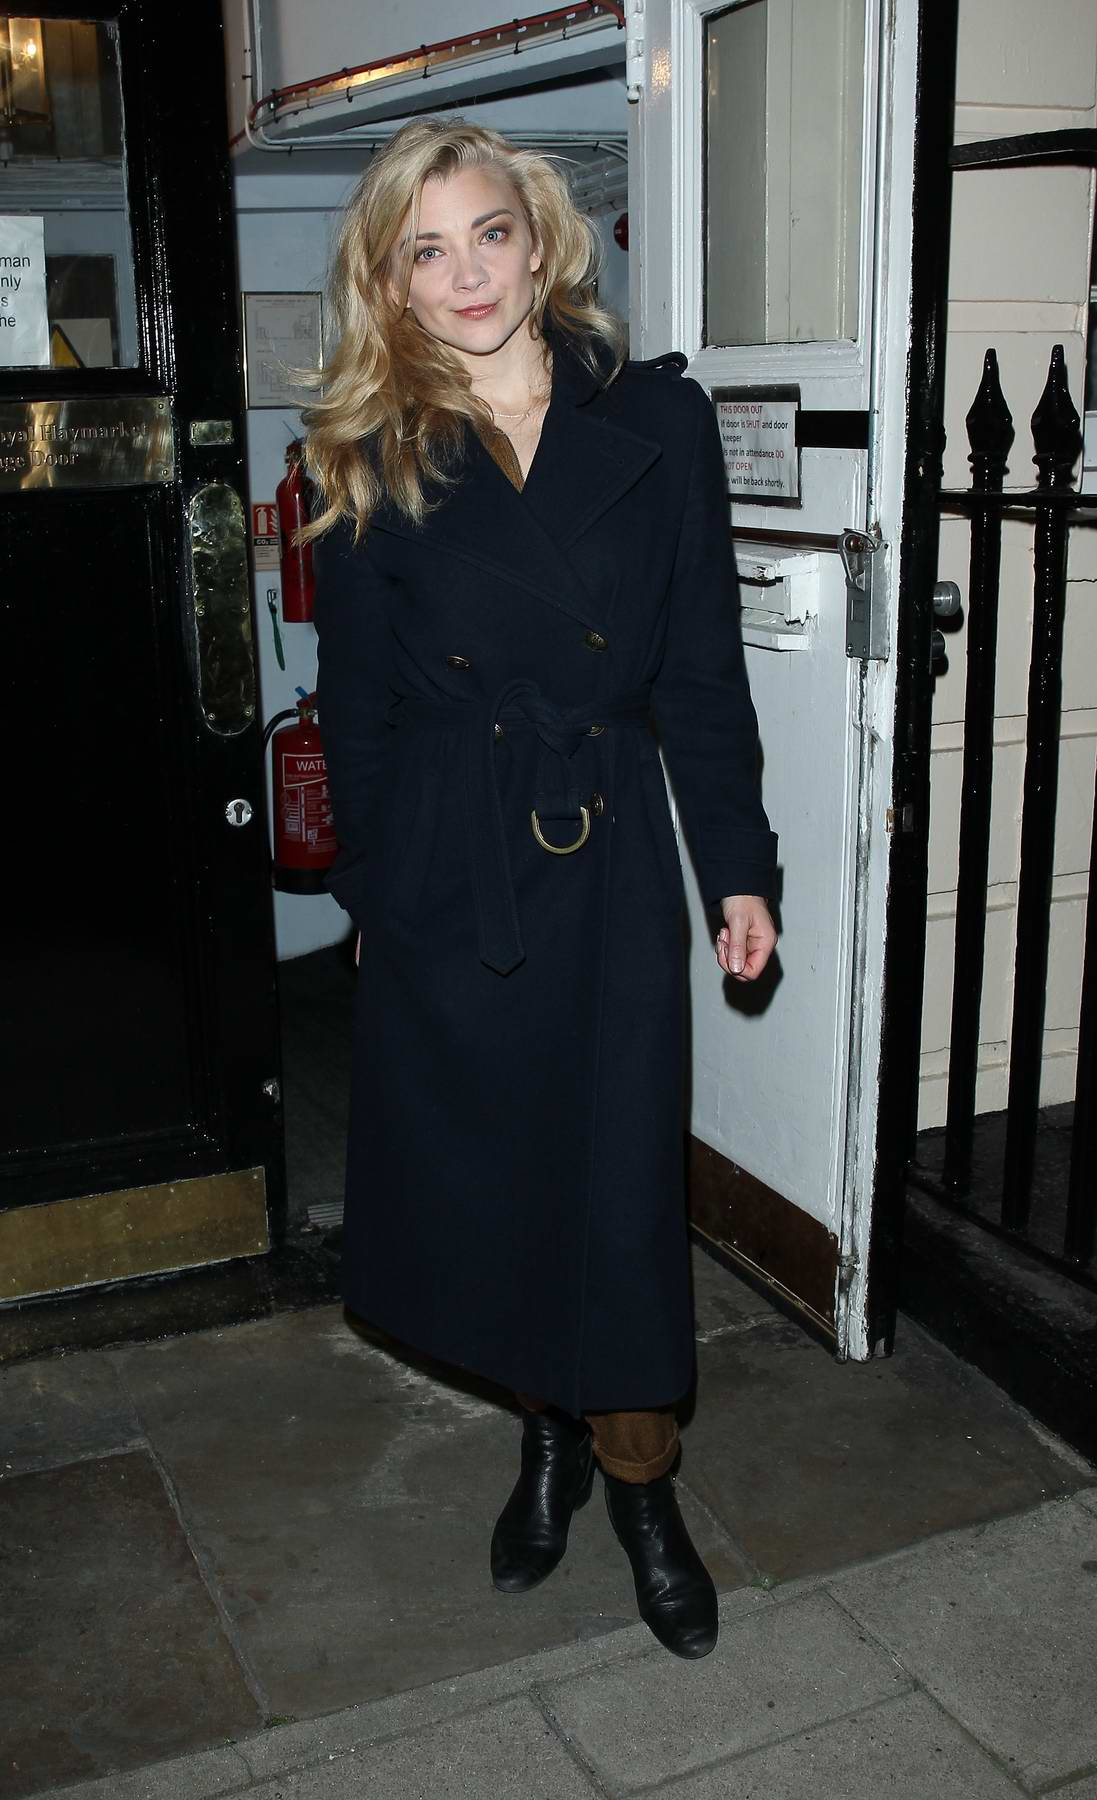 Natalie Dormer leaving after her performance in Venus in Fur at The Theatre Royal in London